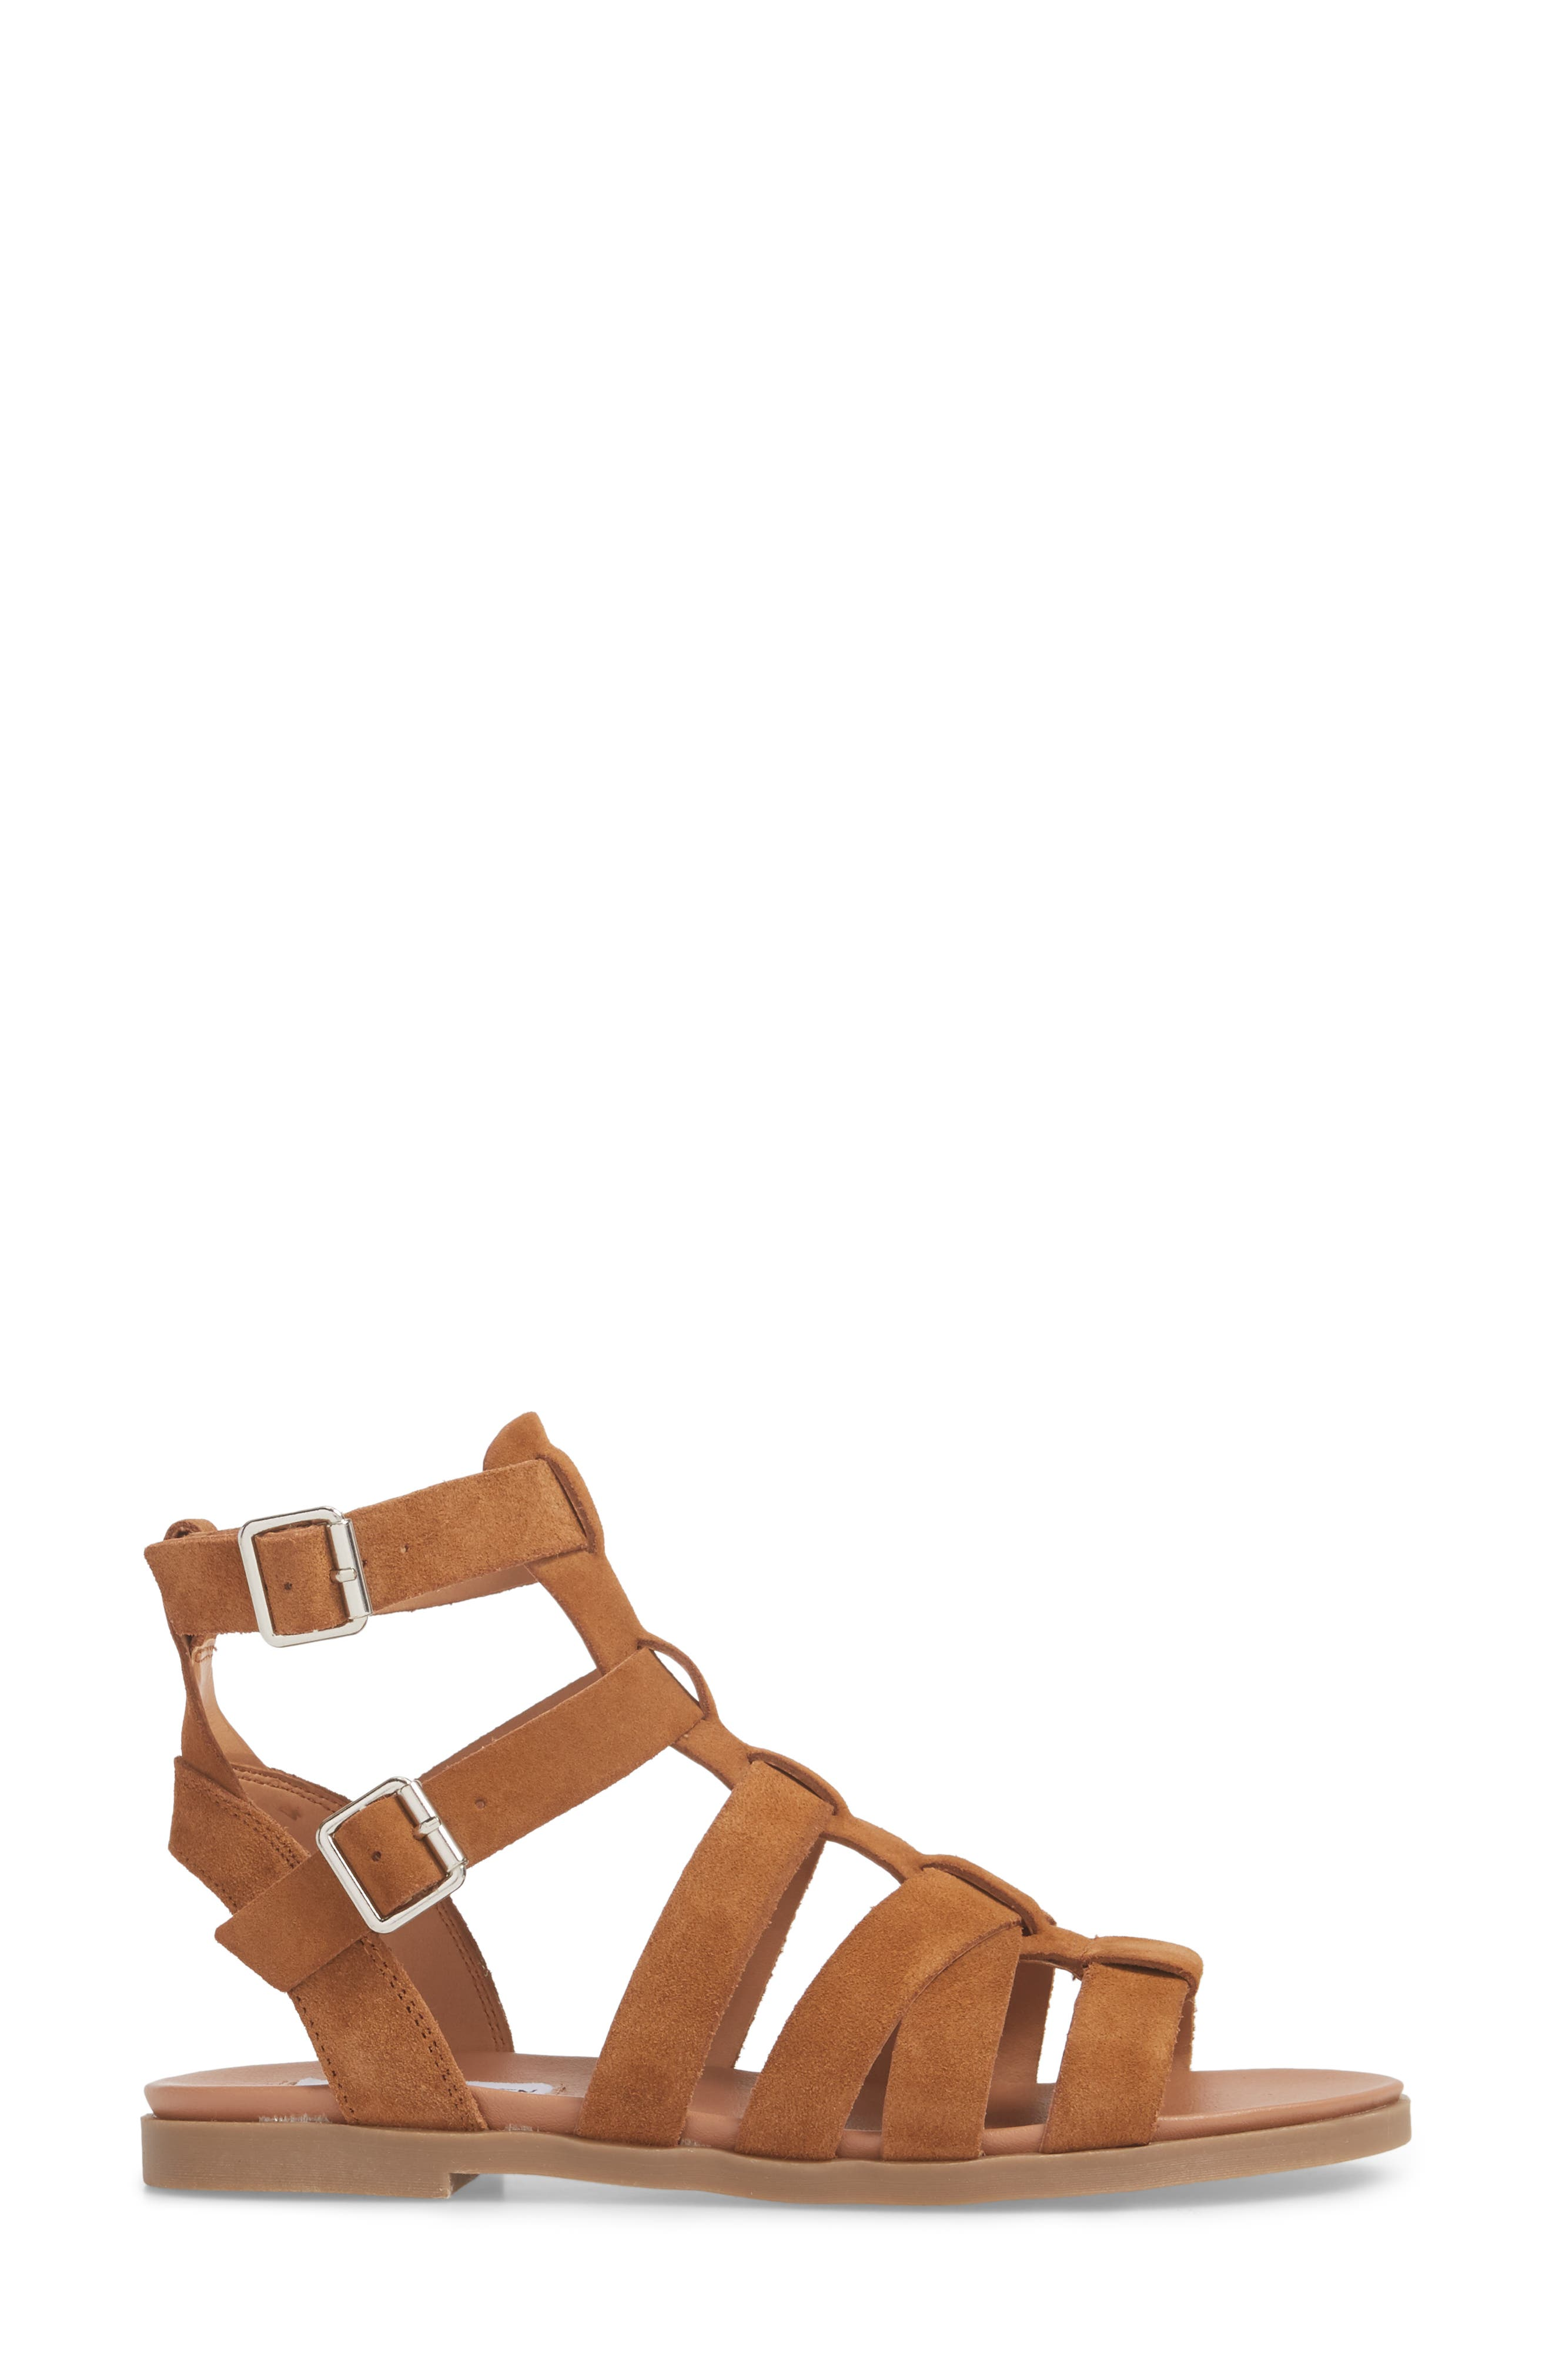 Delmar Sandal,                             Alternate thumbnail 3, color,                             Chestnut Suede